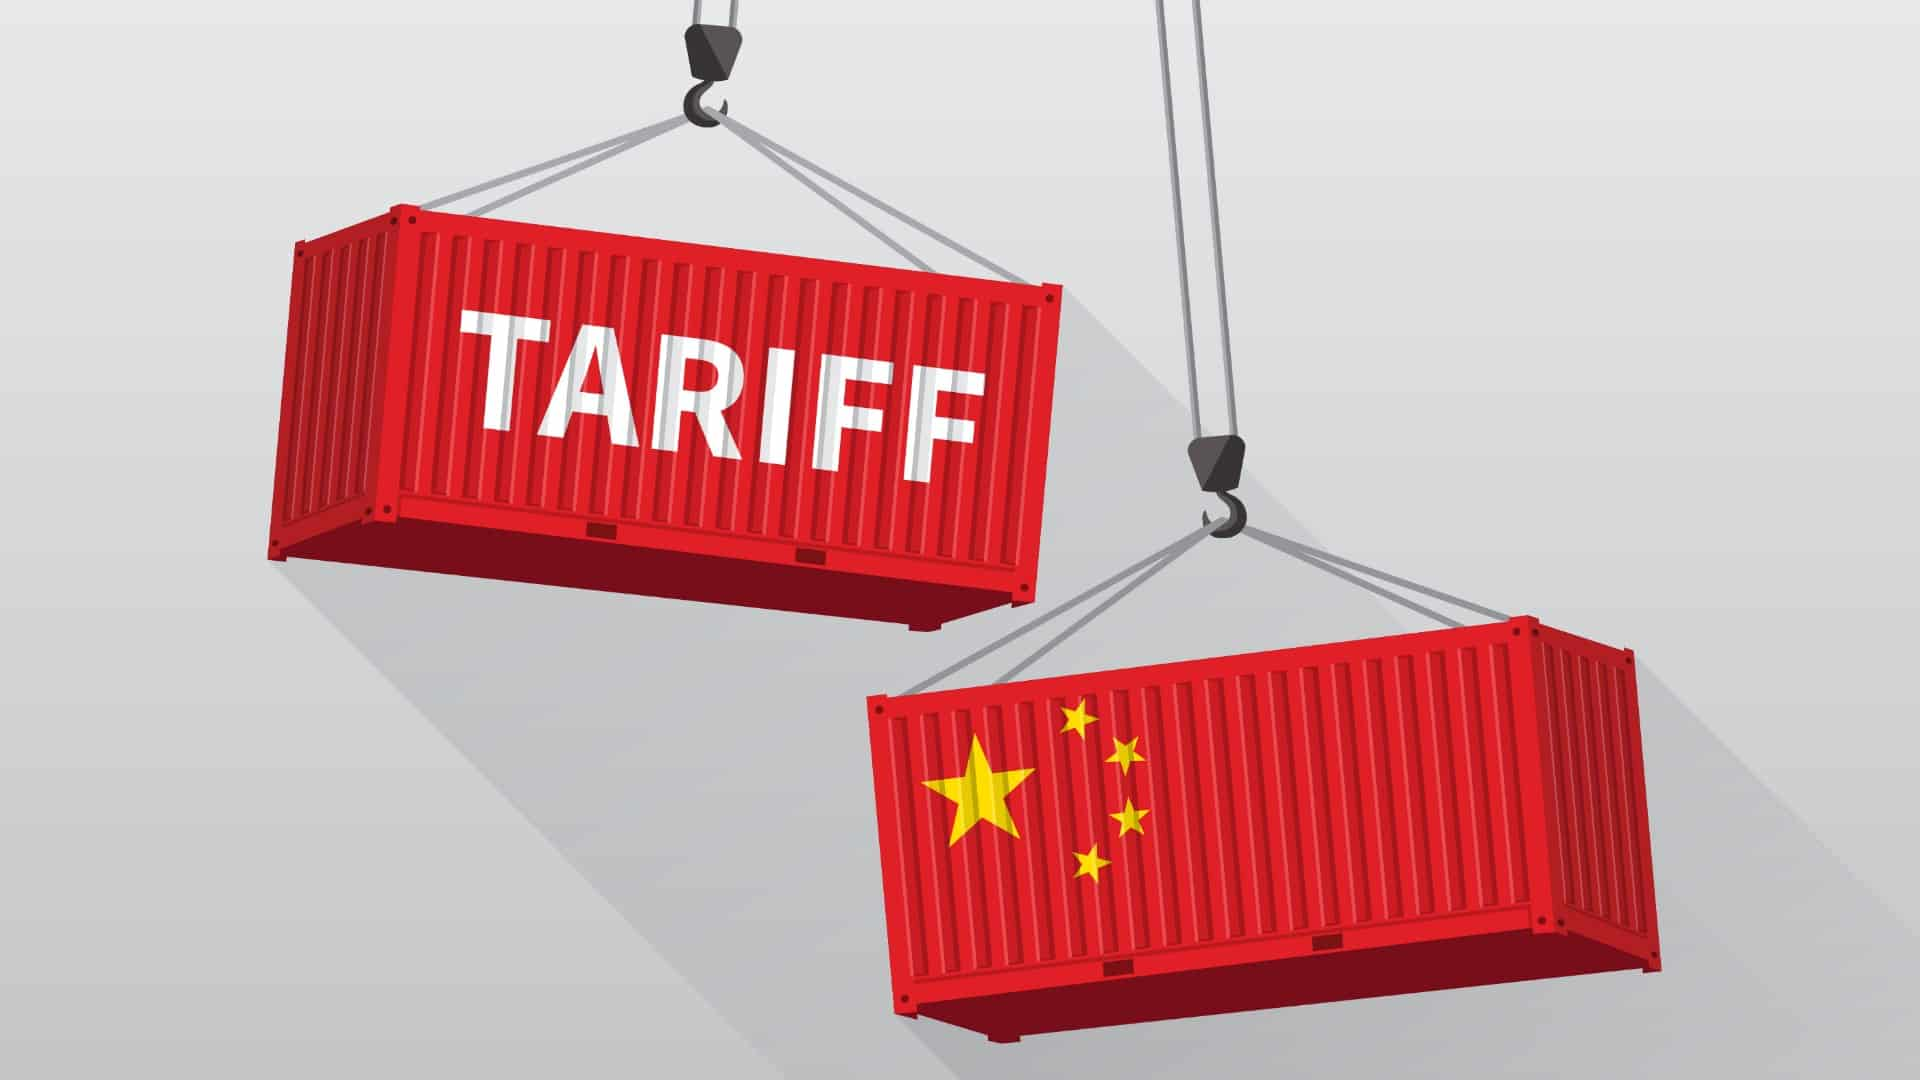 Two red shipping containers with the word 'Tariff' and Chinese flag